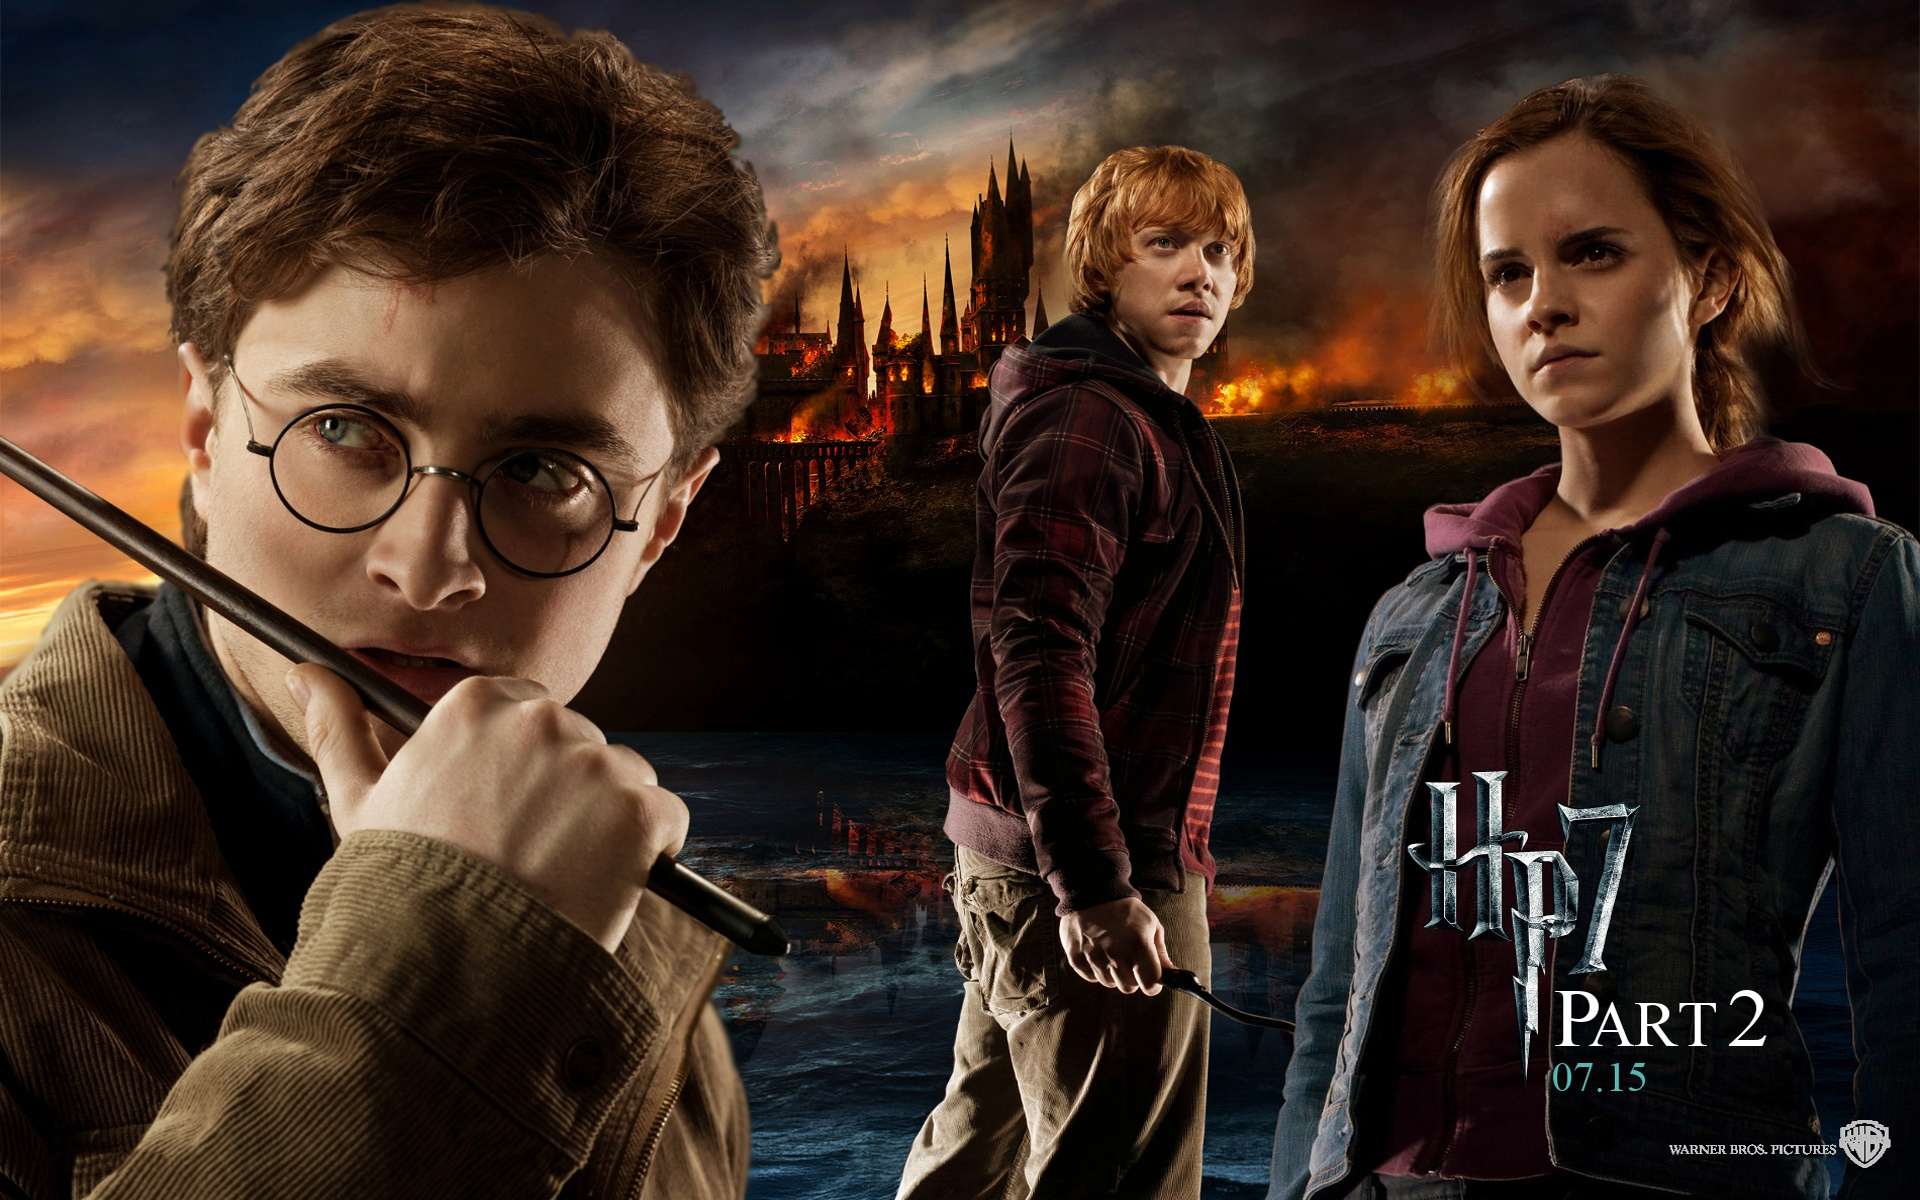 Movie - Harry Potter And The Deathly Hallows: Part 2  - Harry Potter - Hermione Granger - Ron Weasley - Hp7 - Hp7 Part 2 - Deathly Hallows - Harry Potter And The Deathly Hallows - Harry Potter And The Deathly Hallows Part 2 Wallpaper